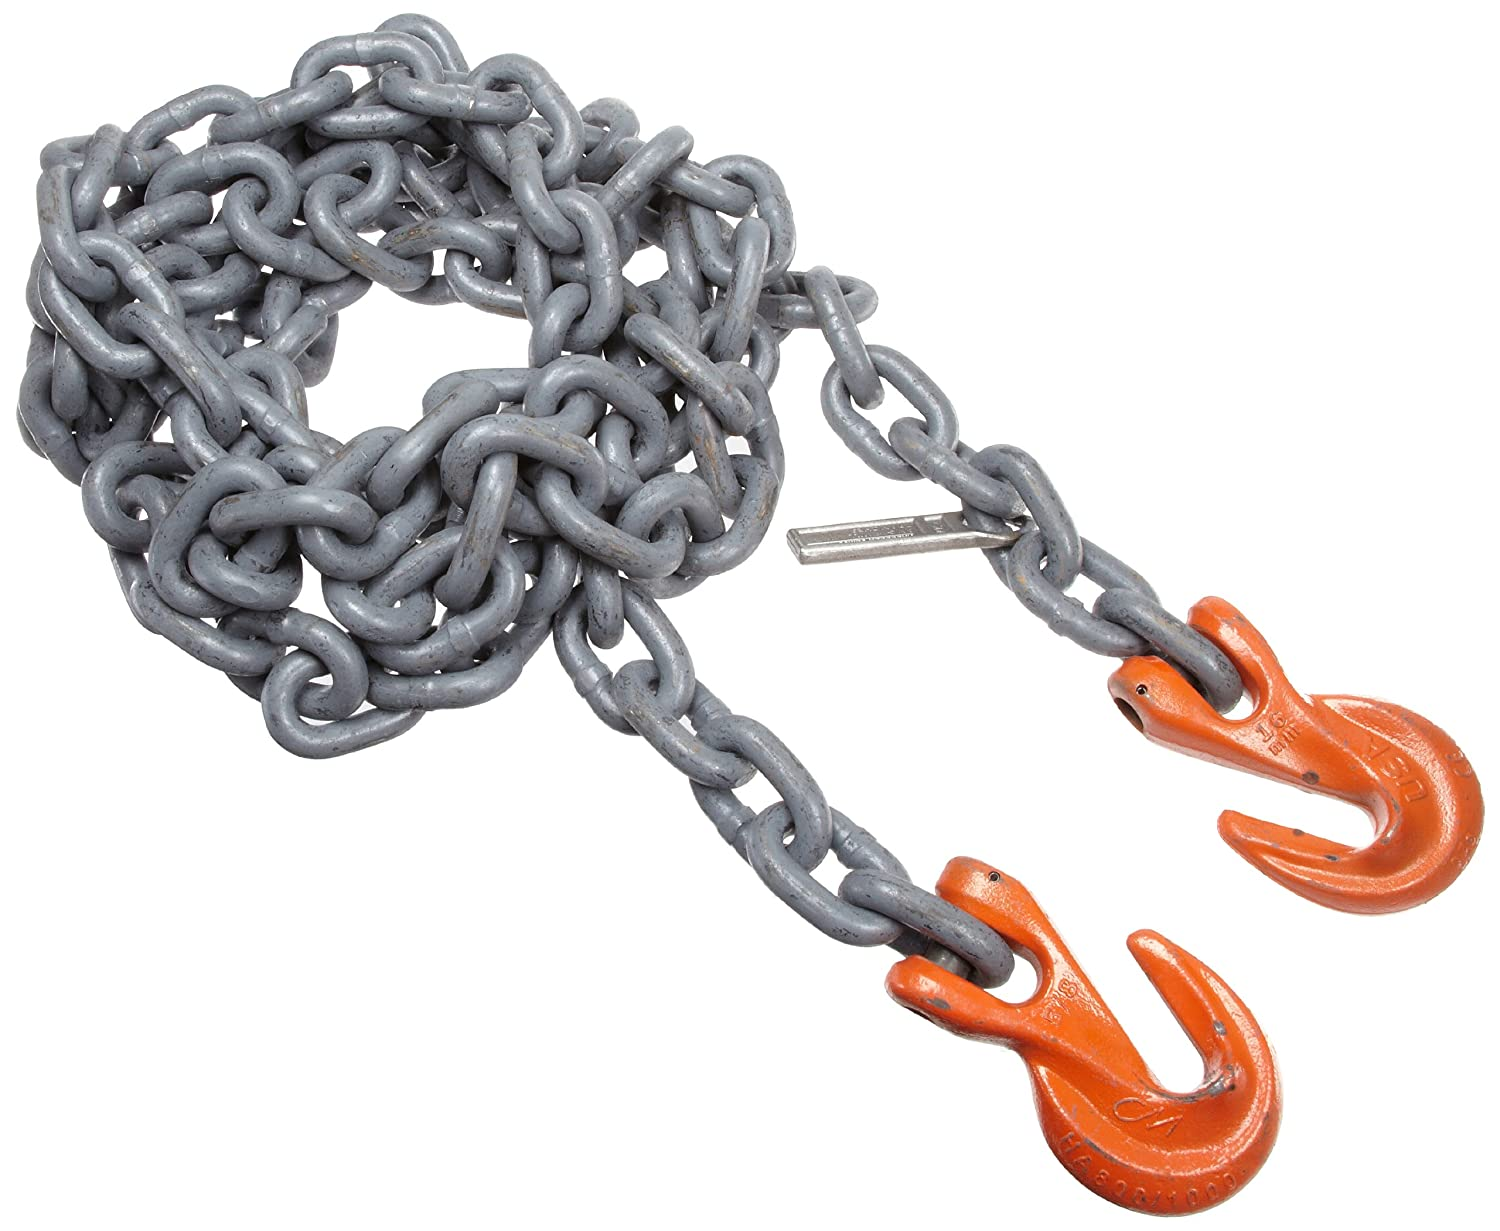 10 Length Fixed-Leg Mazzella SGG Mechanical Alloy Chain Sling 15000 lbs Vertical Load Capacity 1//2 Chain Size Grade 100